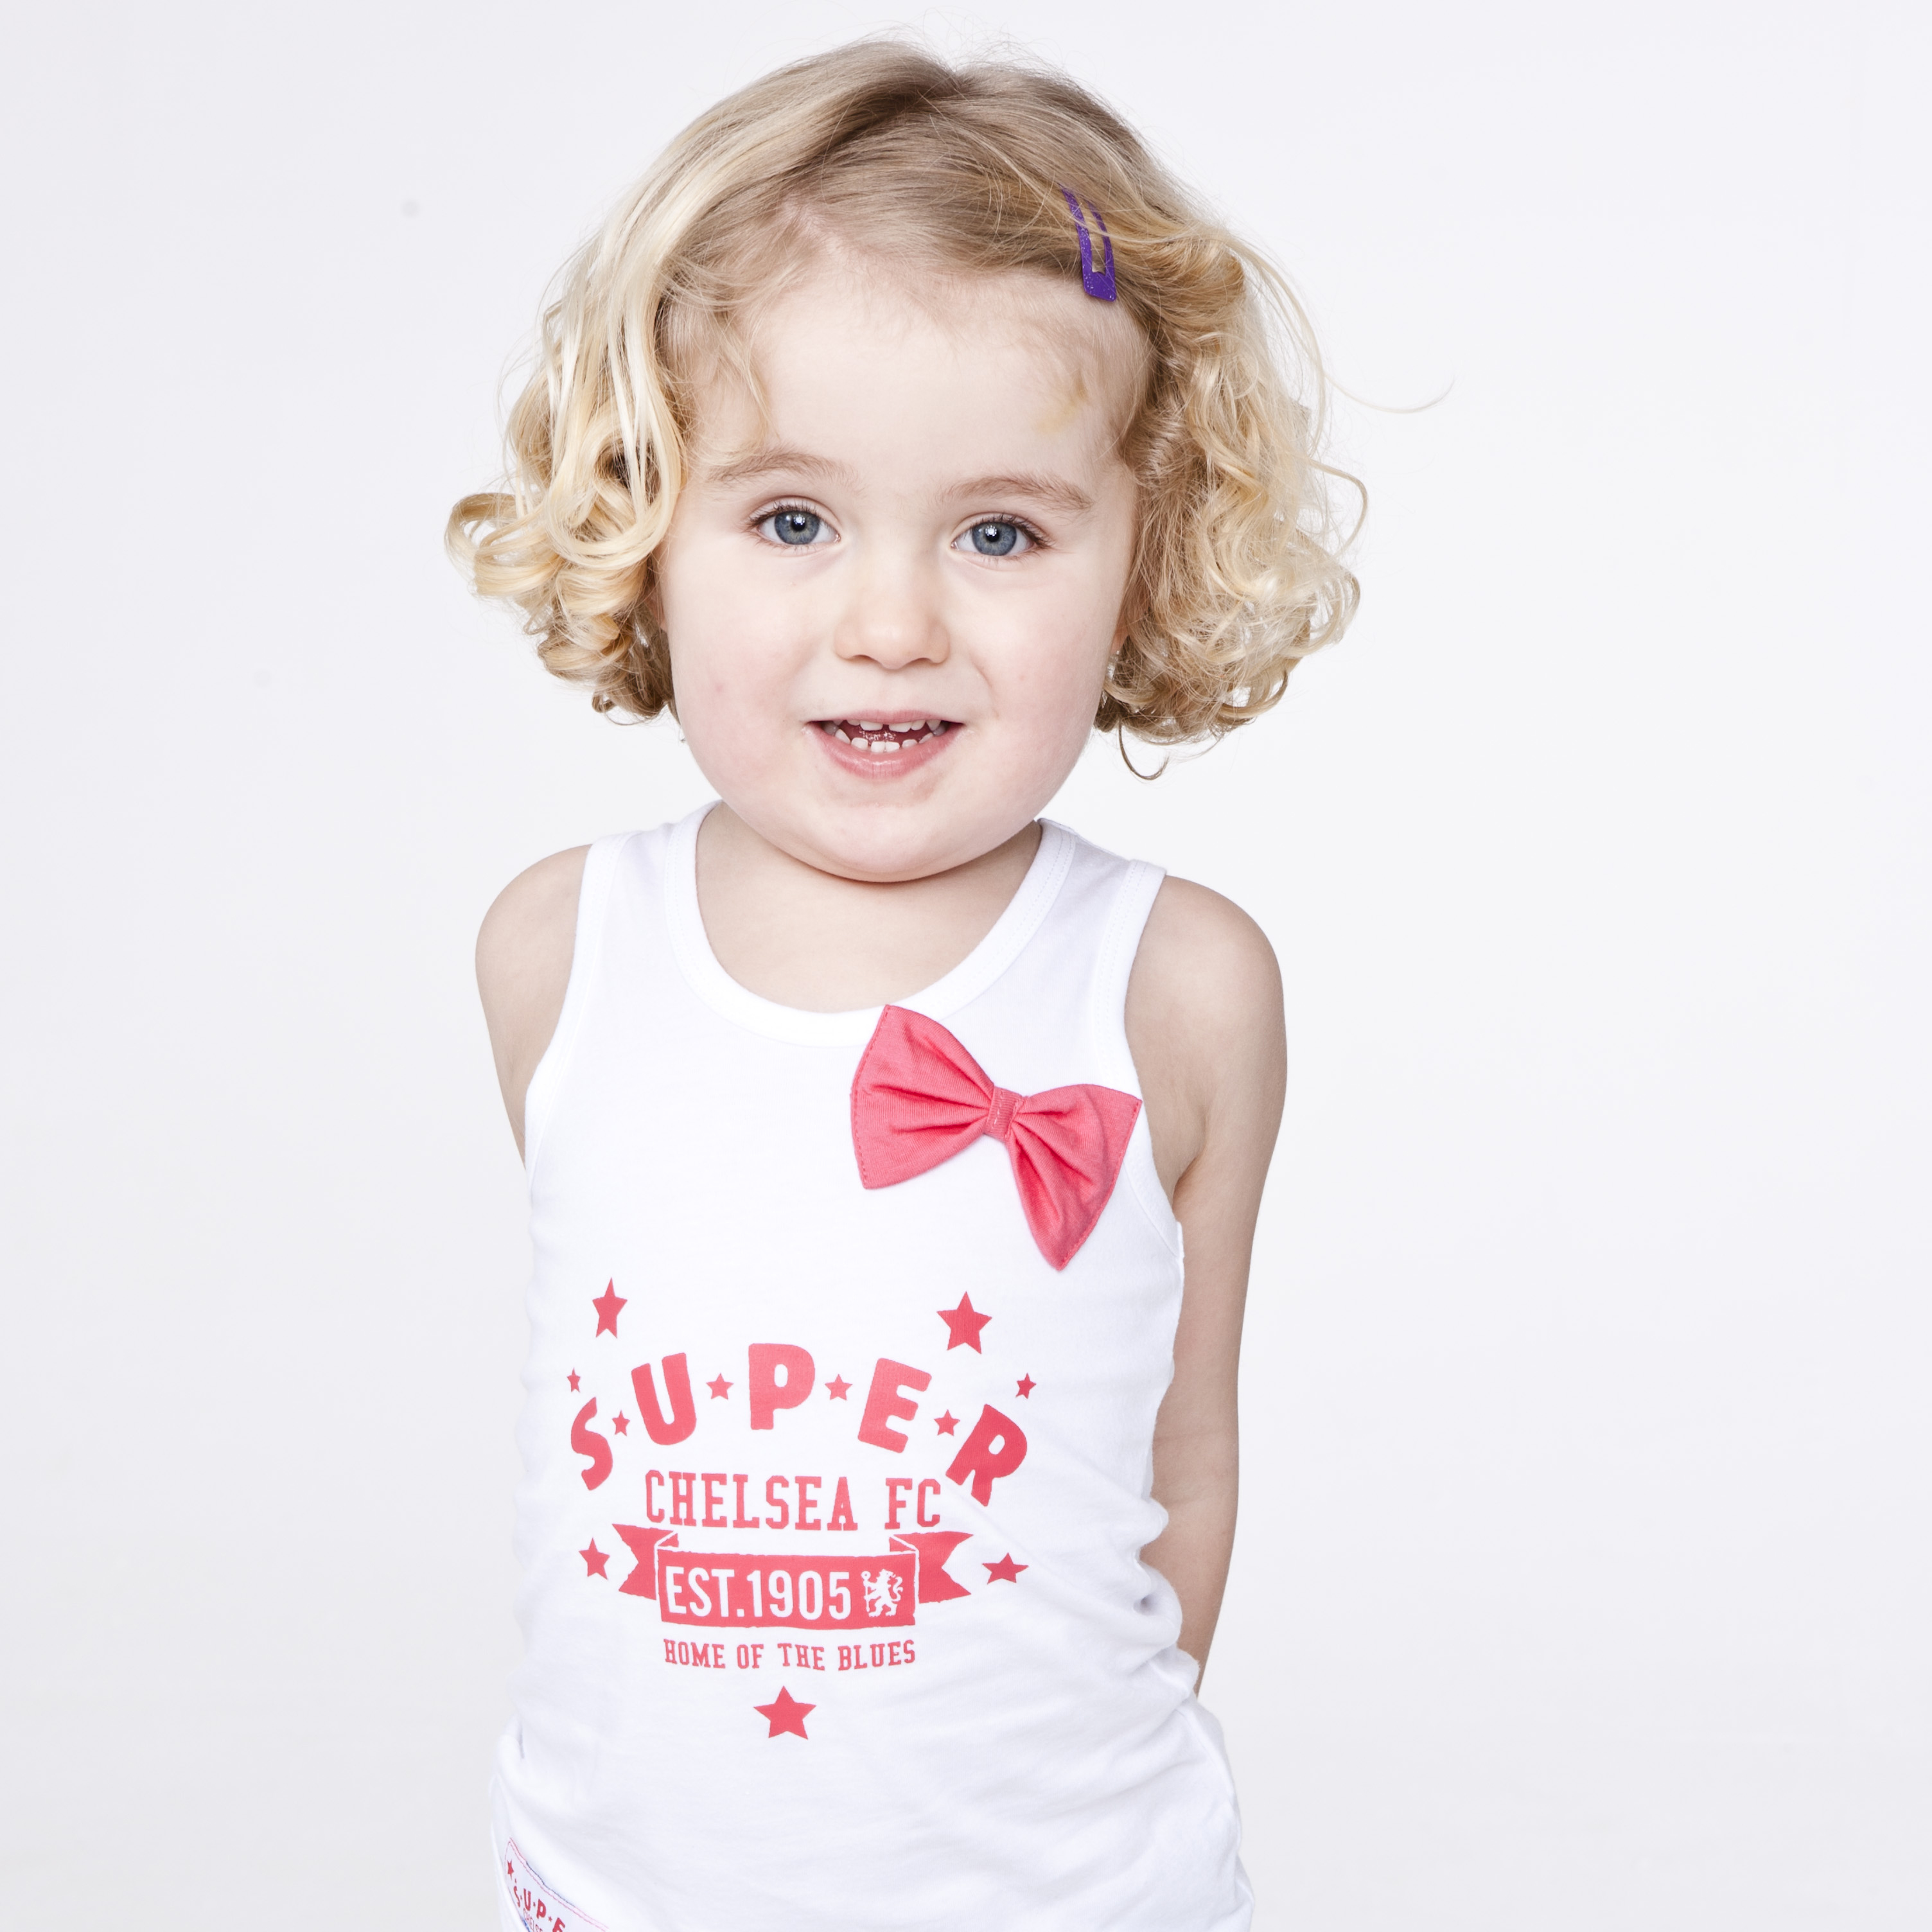 Chelsea Super Est 1905 Vest - White - Infant Girls